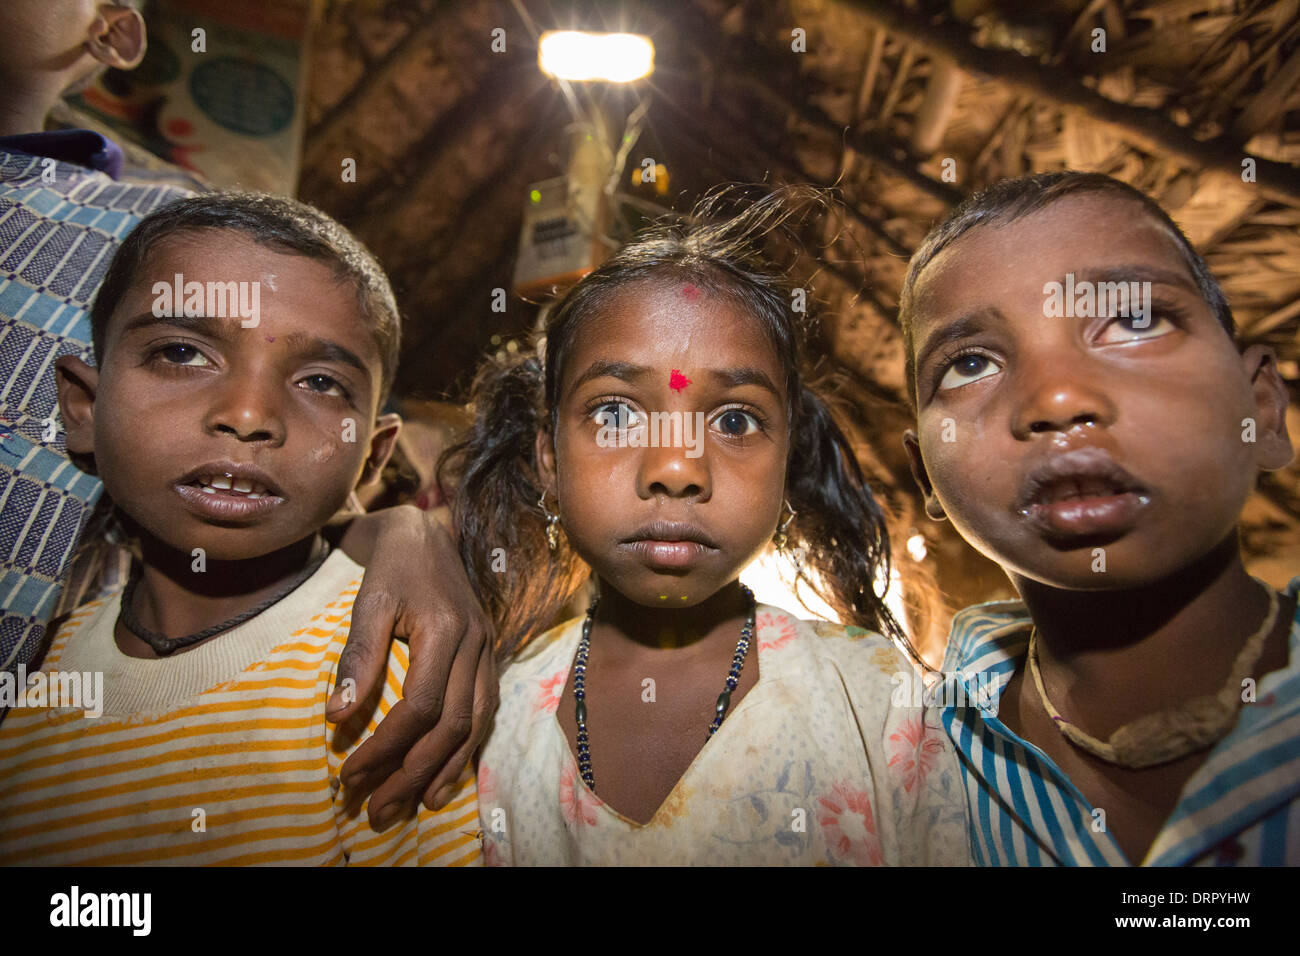 An untouchable family in their hut, illuminated by an electric light, powered by an A4 sized solar panel, - Stock Image